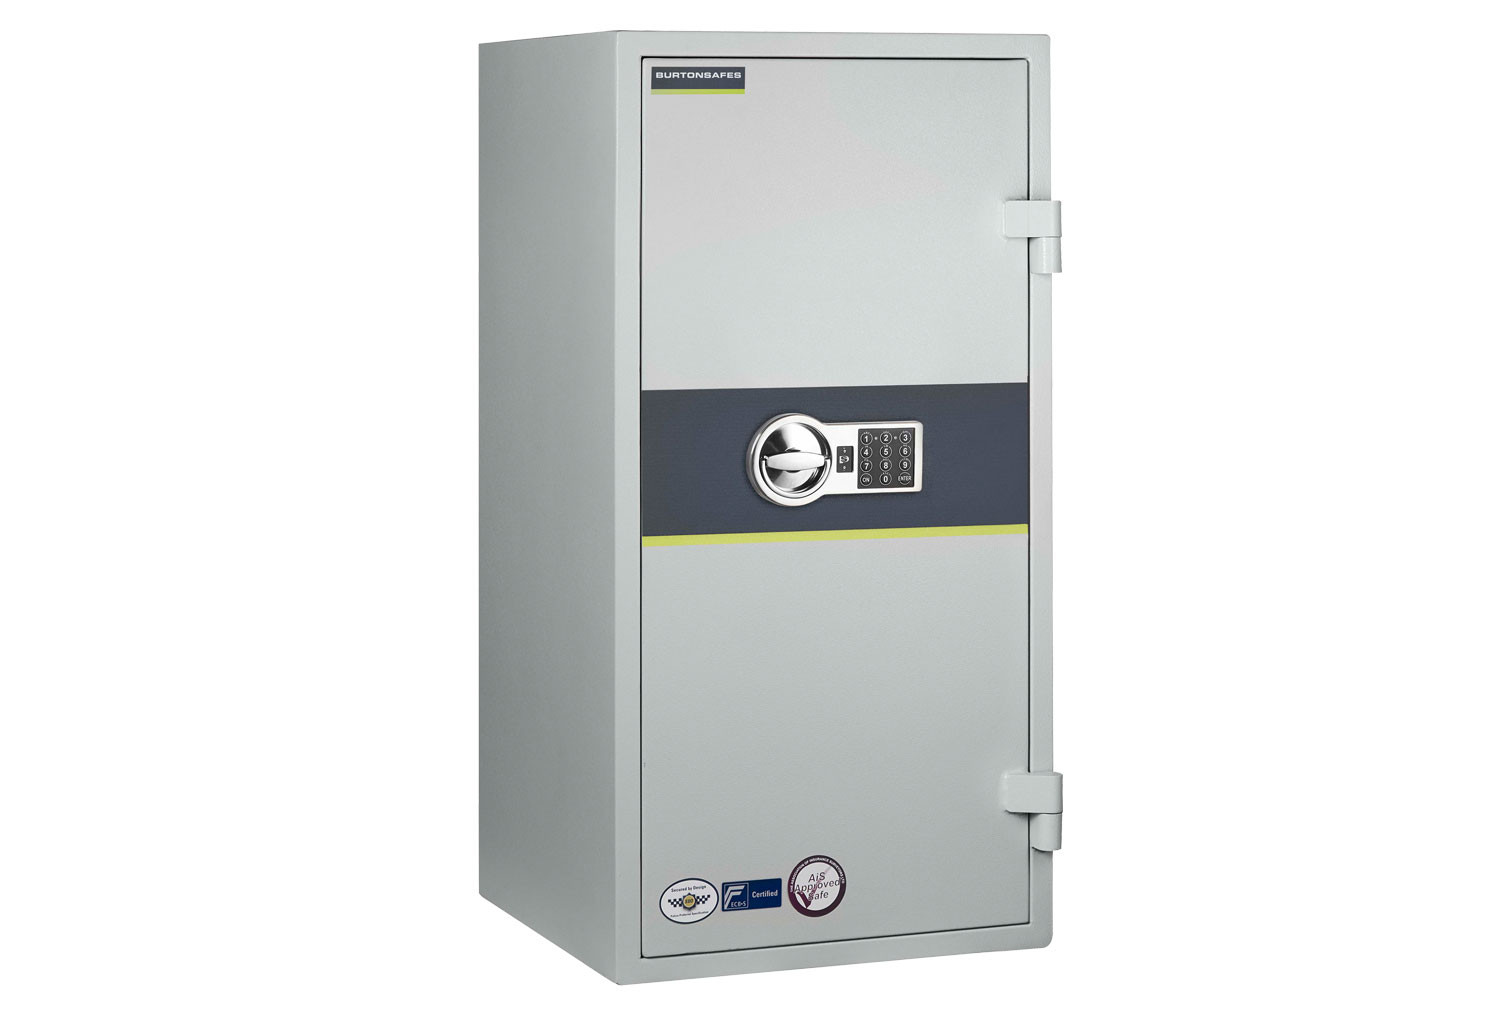 Burton Eurovault Aver Grade 0 Size 3 Safe With Electronic Lock (70ltrs)